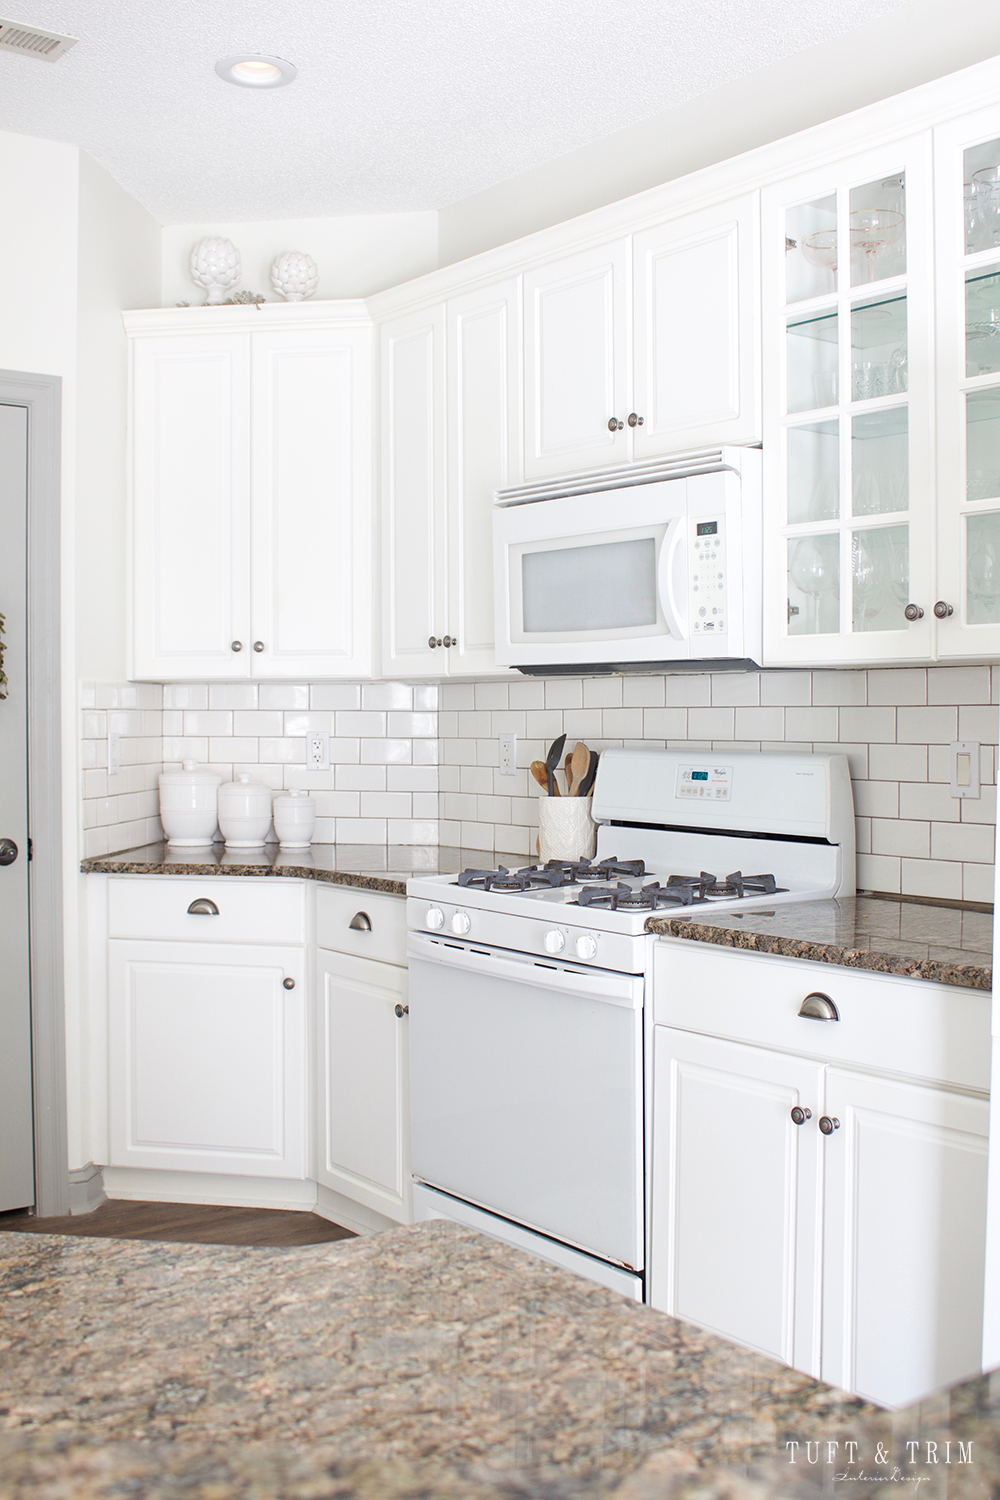 DIY Subway Tile Backsplash - Tuft & Trim